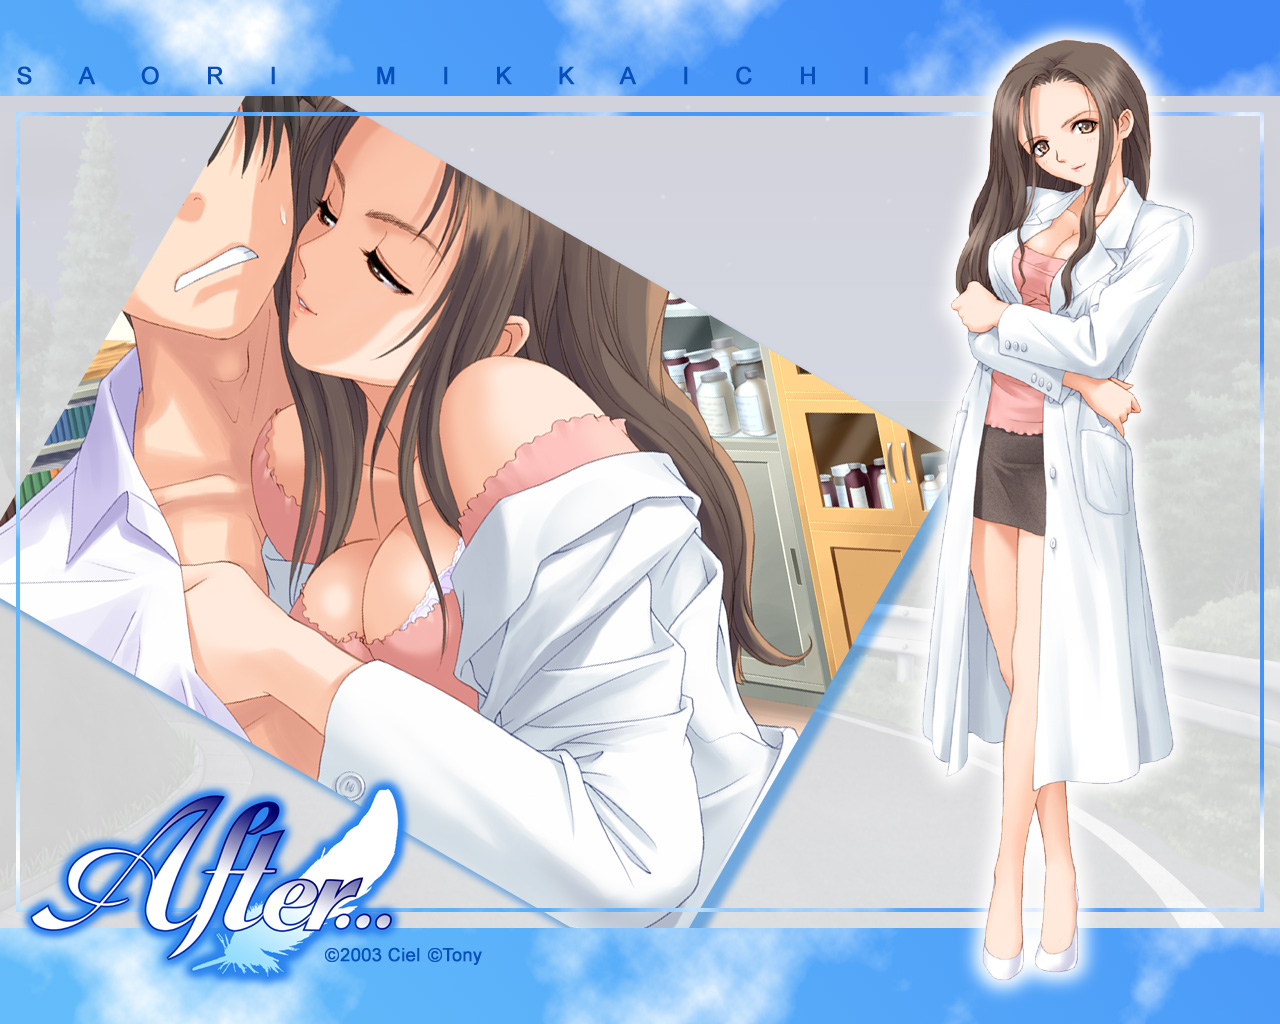 After Sweet Kiss - Images Gallery